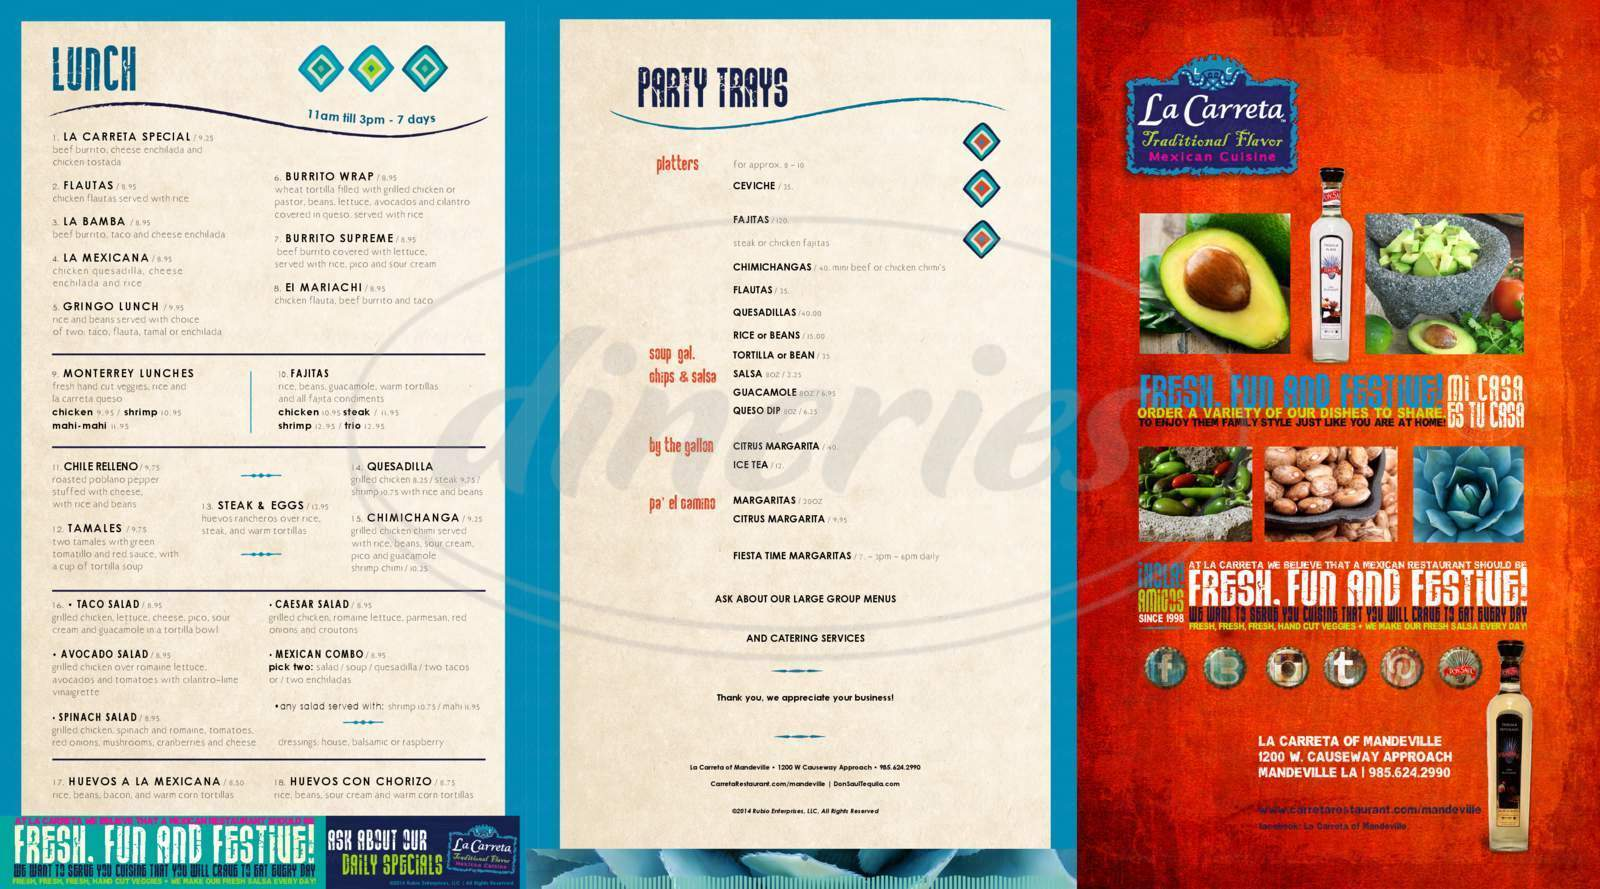 menu for La Carreta of Mandeville